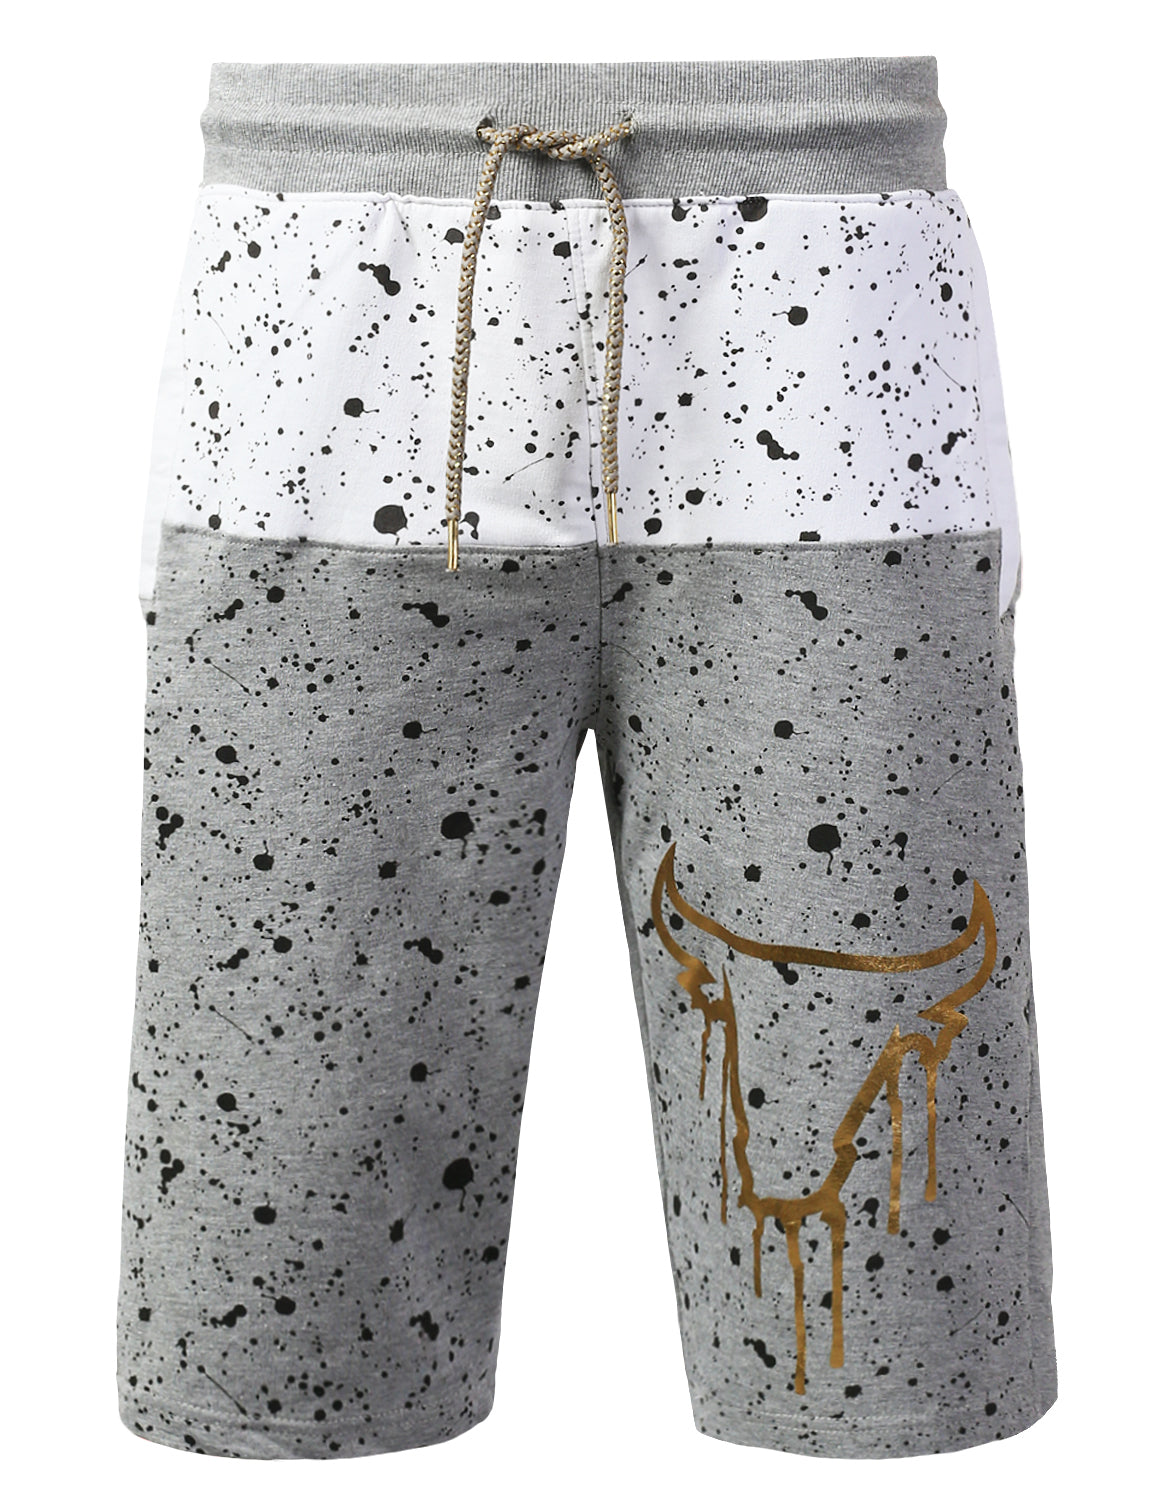 HGRAY Splatter Bulls Print Shorts Pants - URBANCREWS